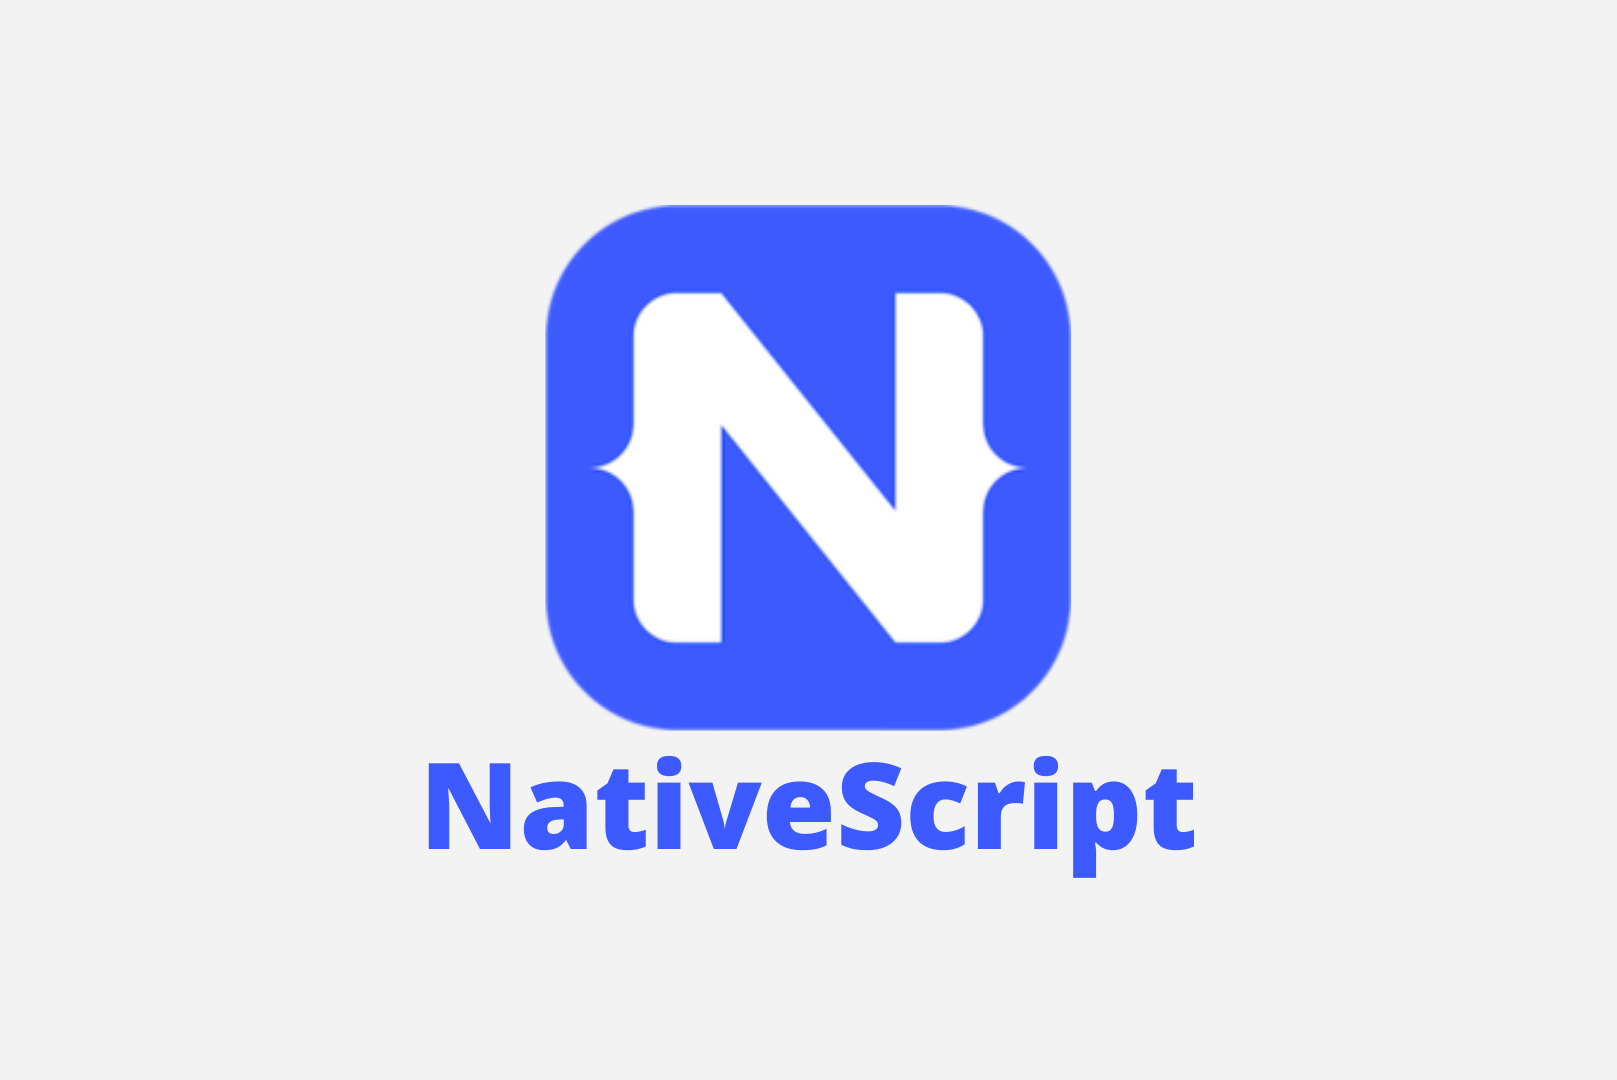 NativeScript for Android